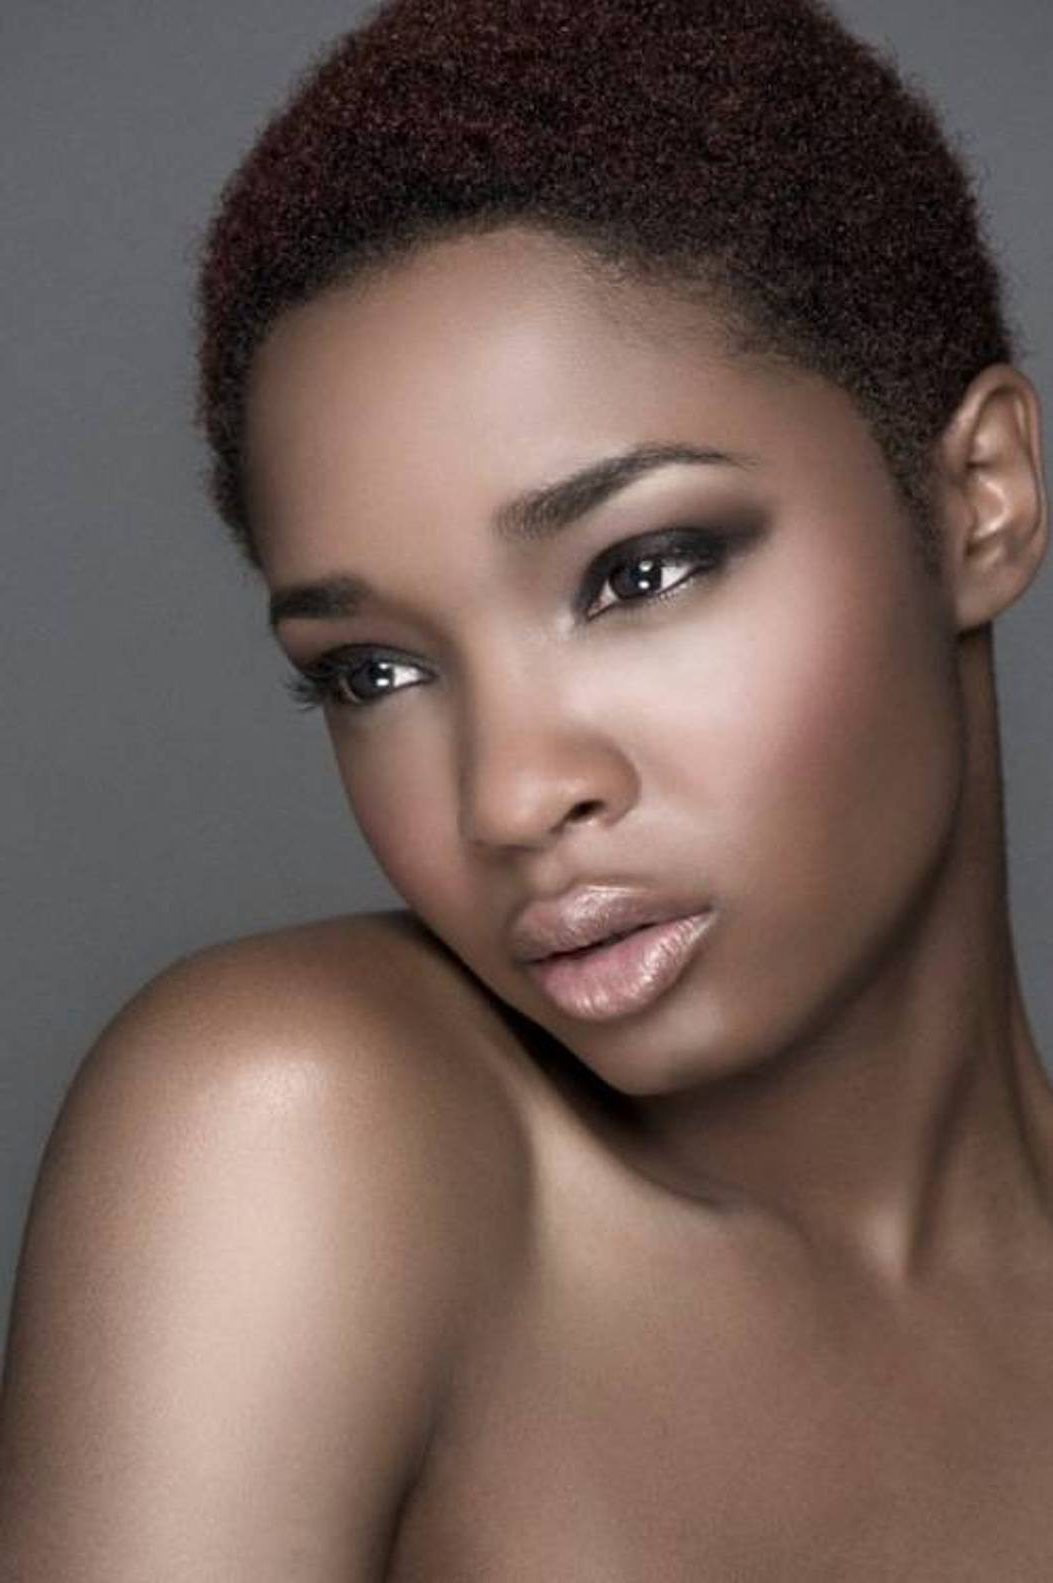 African American Short Natural Hairstyles 2013 Lovely Awesome Short Pertaining To Short Black Hairstyles For Oval Faces (Gallery 16 of 25)